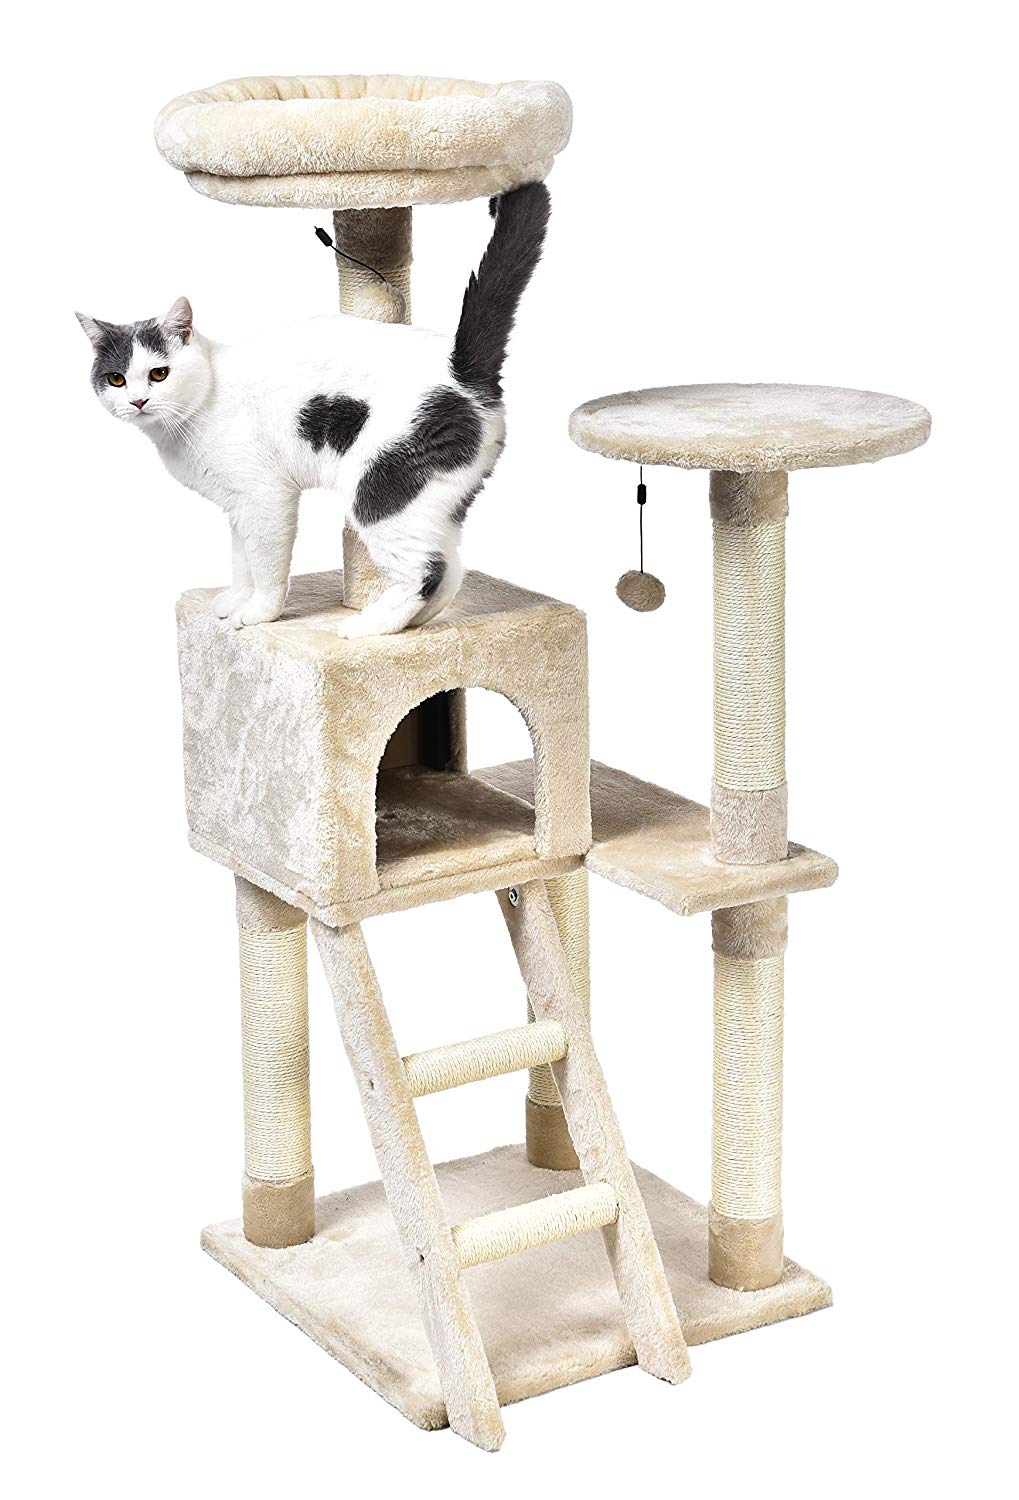 8. AmazonBasics Cat Tree with Platform, X-Large Sizes